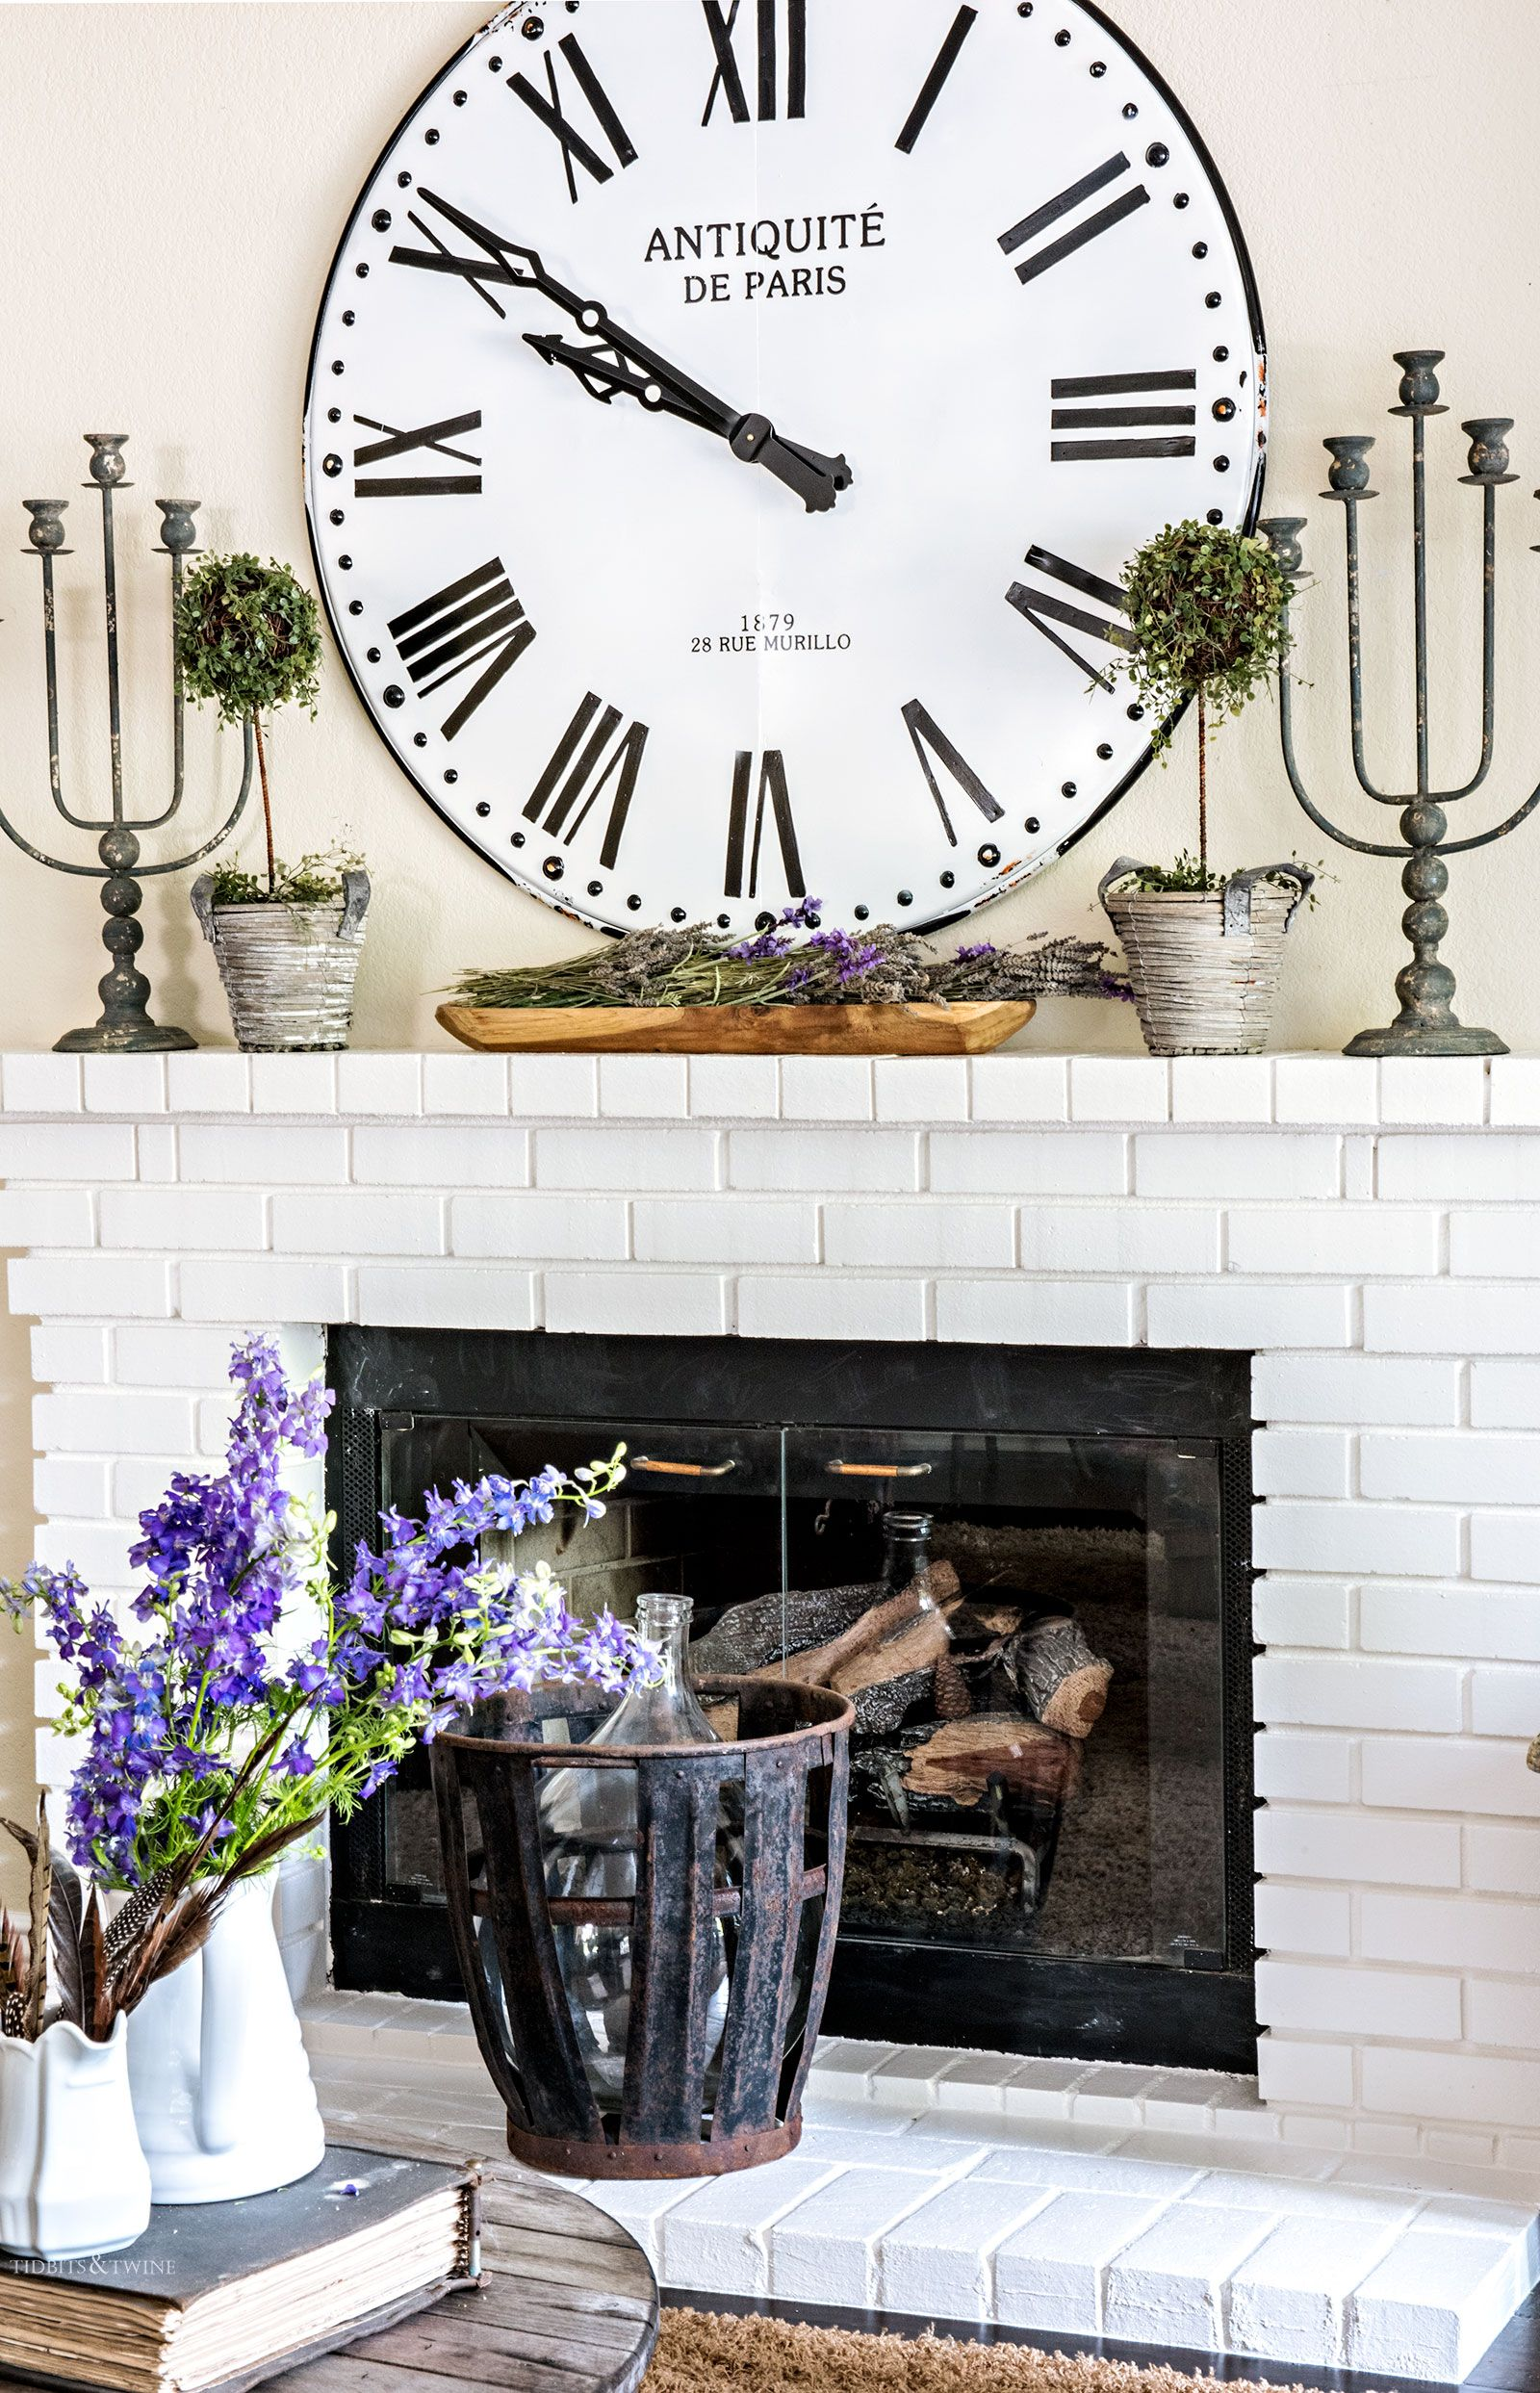 Decorating A Fireplace Mantel With An Oversized Clock And Topiaries For A French Farmhouse Look Fireplace Mantels Fireplace Decor Fireplace Mantel Decor